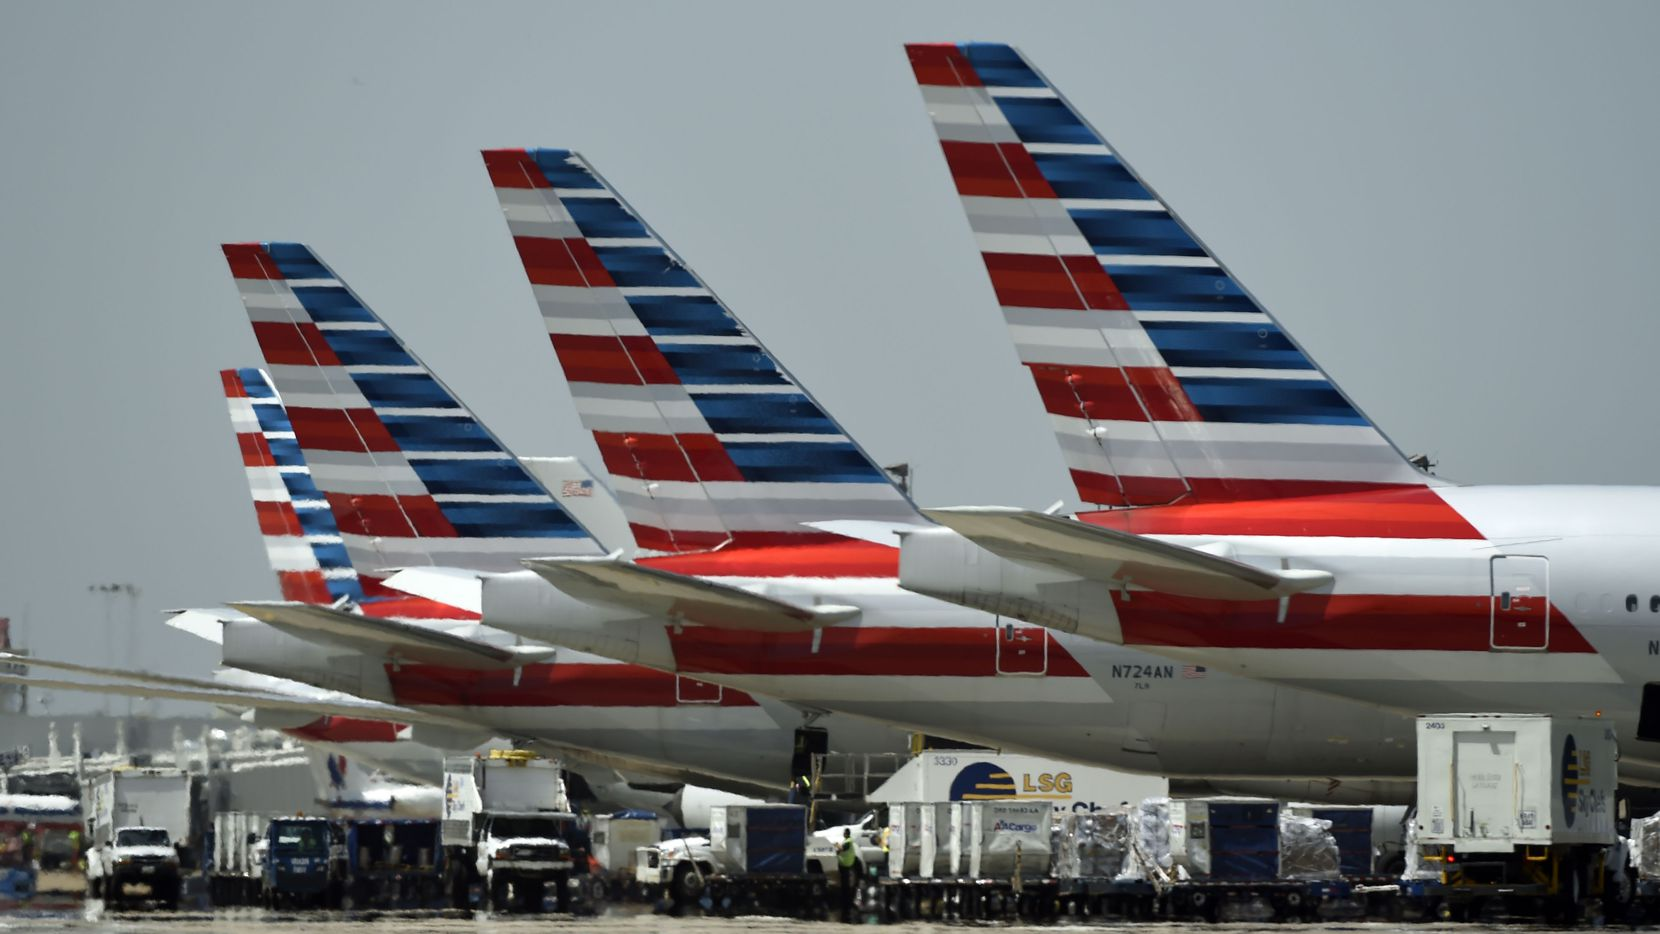 American Airlines planes at Dallas-Fort Worth Airport.